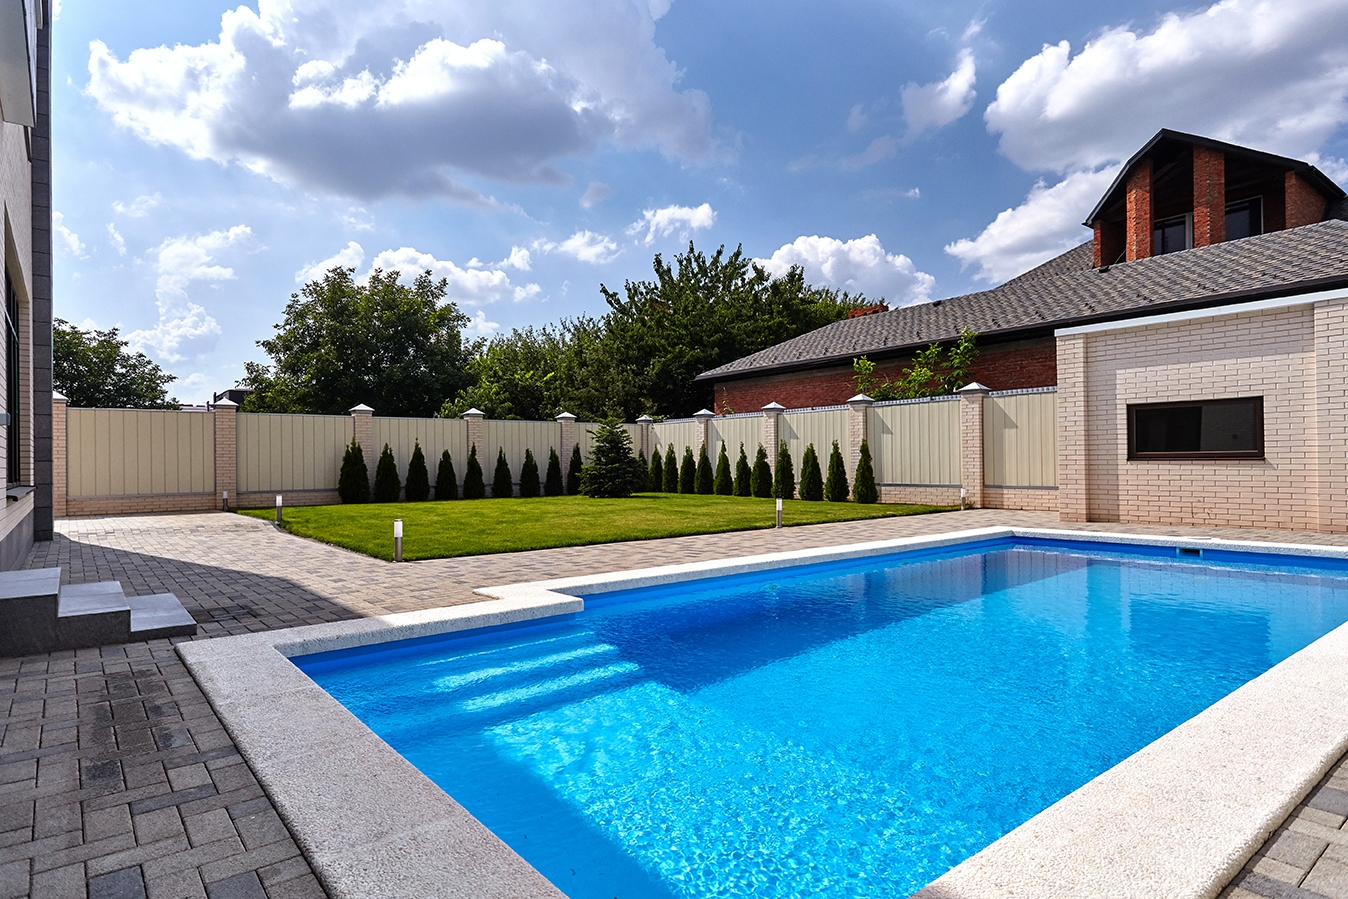 , Why You Should Invest in a New Pool, Saubio Making Wealth